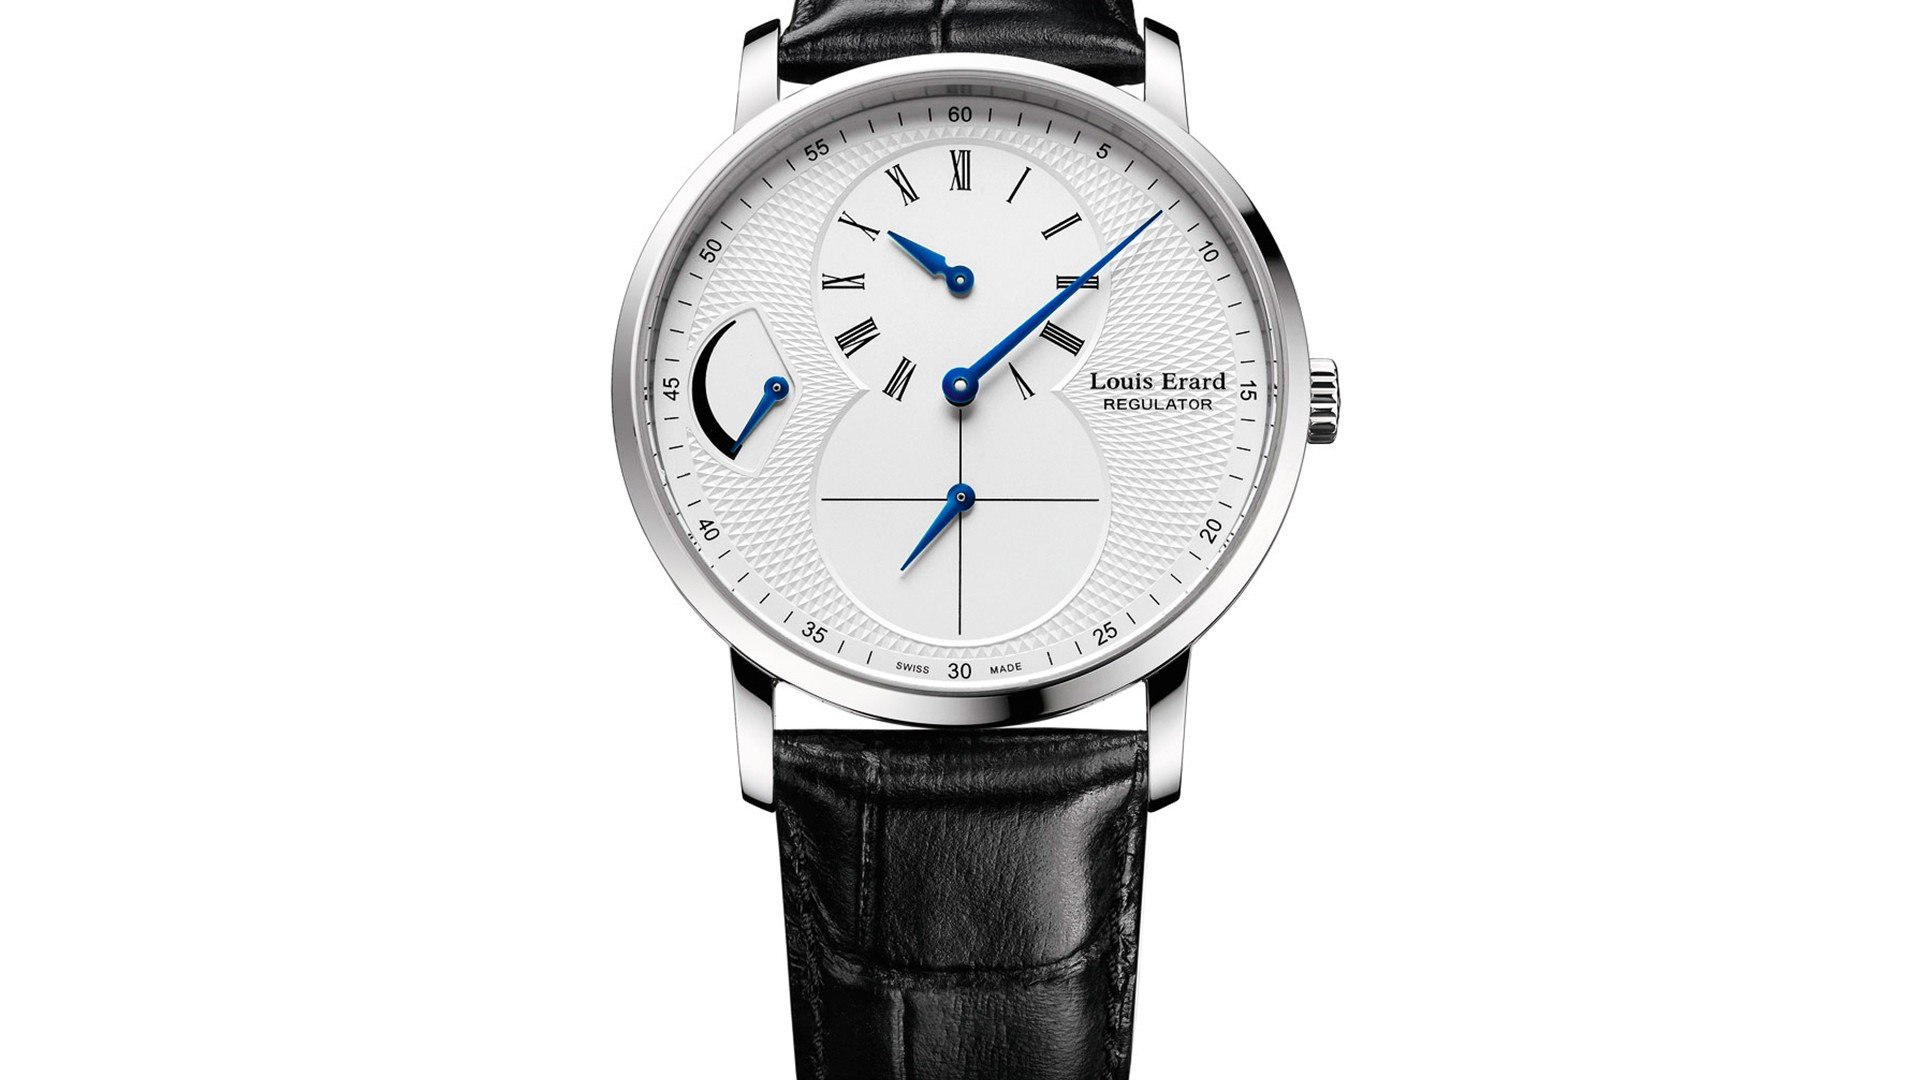 Louis Erard Excellence Guilloché Regulator watch